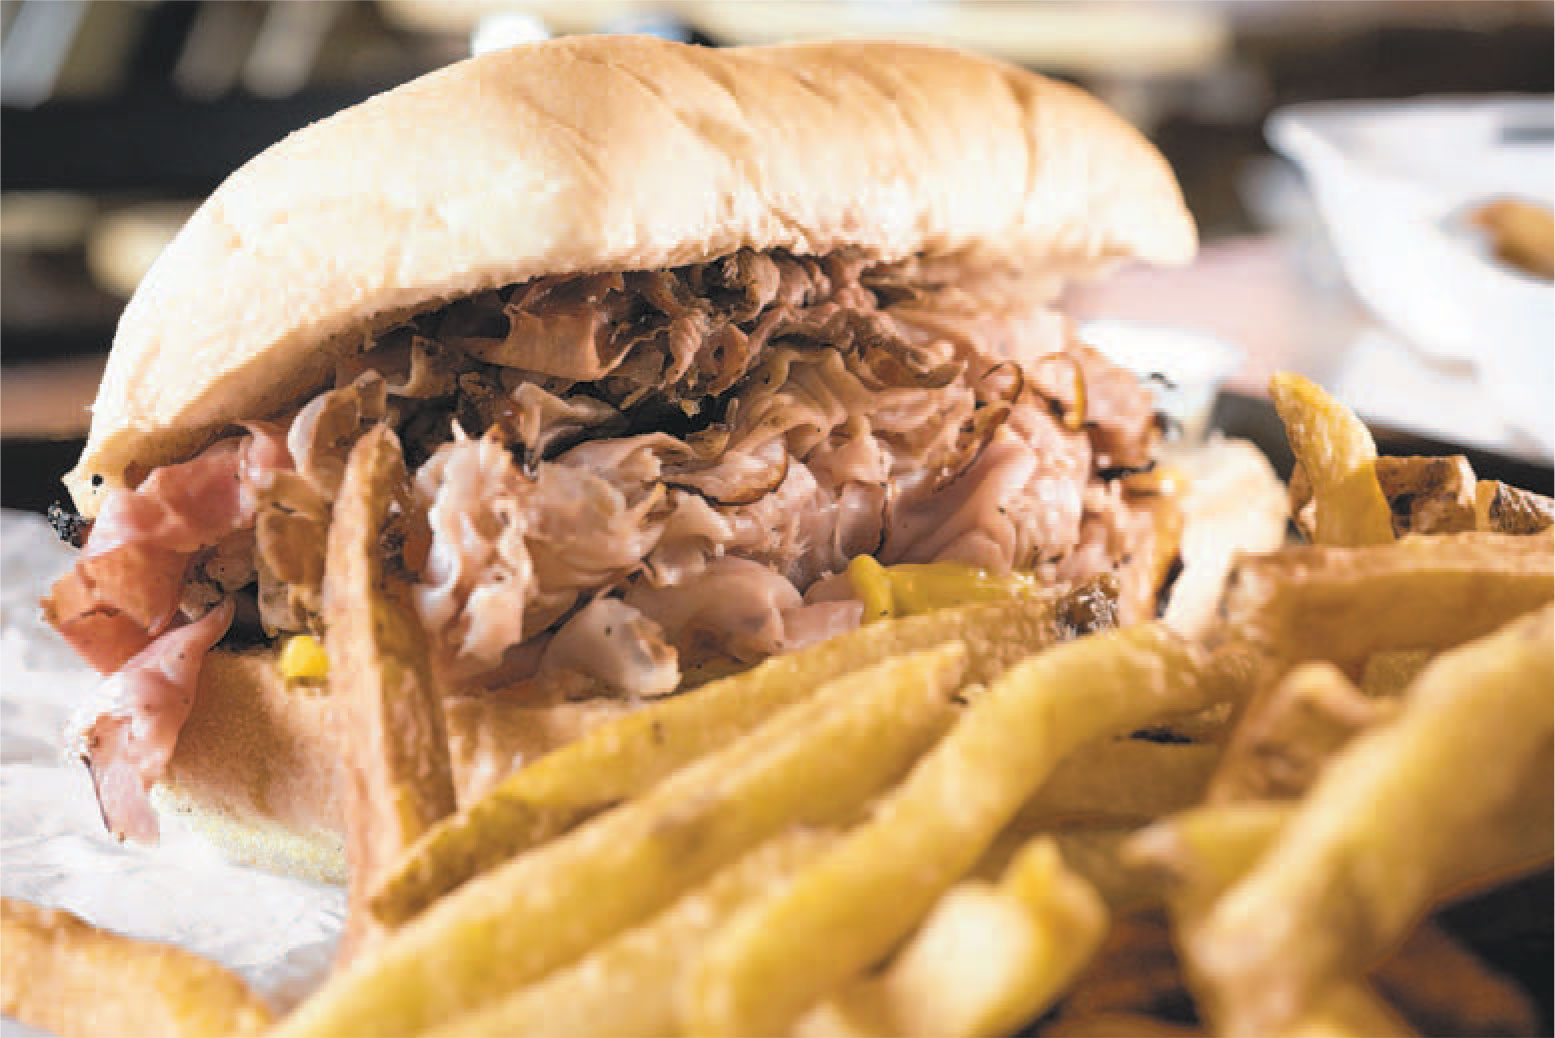 Chaps Pit Beef is Classic Charm City